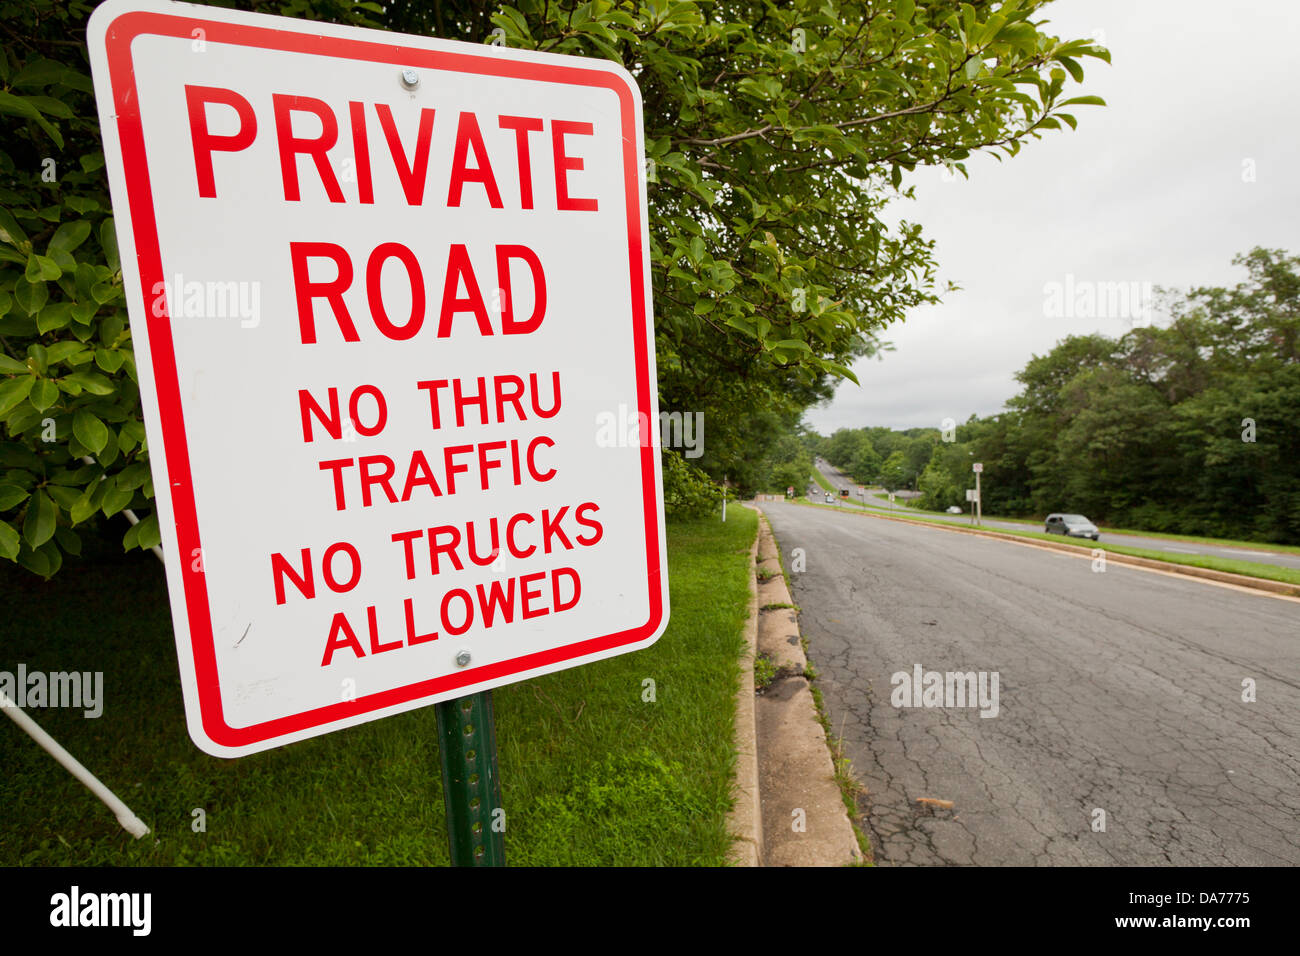 Private road sign - USA - Stock Image